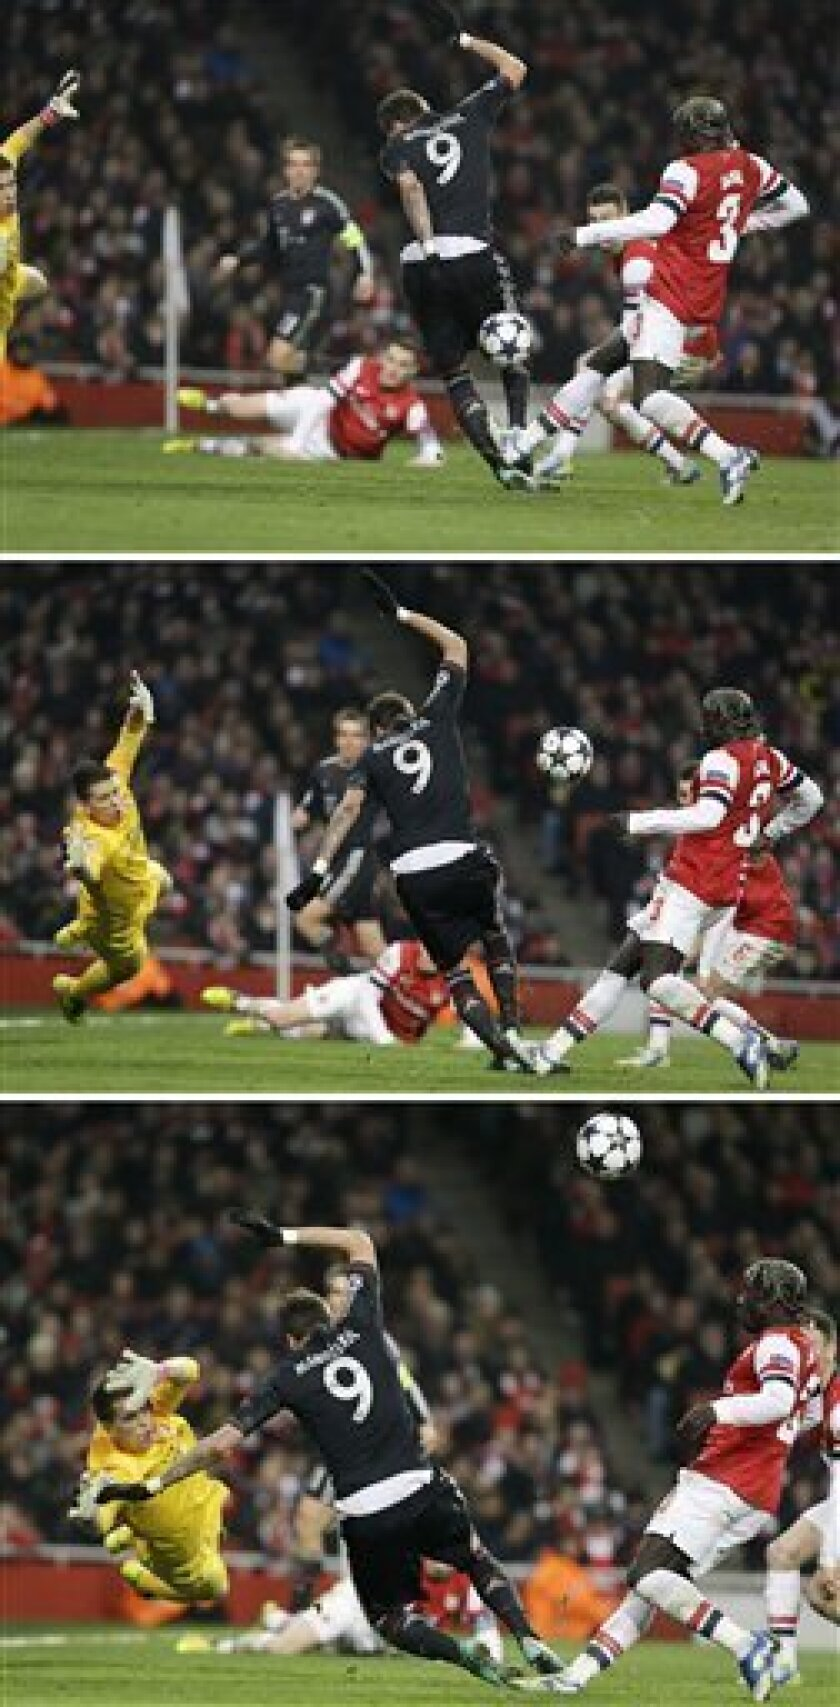 The combo shows Bayern's Mario Mandzukic of Croatia, center, deflecting a shot by Arsenal's Bacary Sagna, right, to score Bayern's 3rd goal as Arsenal goalkeeper Wojciech Szczesny, left, looks on during a Champions League, round of 16, first leg soccer match between Arsenal and Bayern Munich at Ars